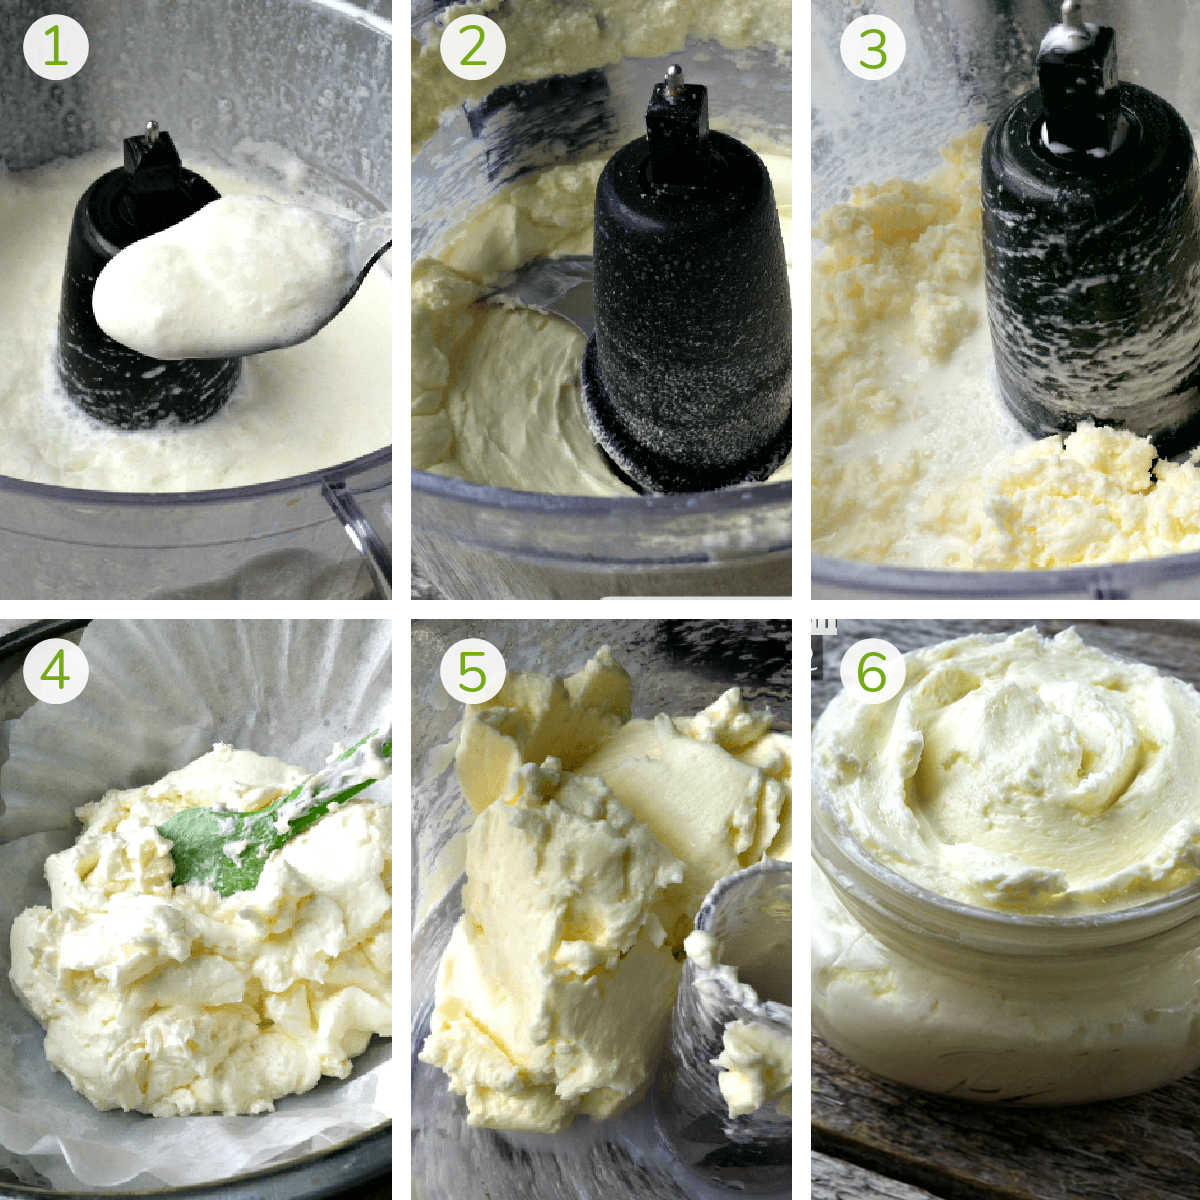 six process photos showing how the fats in the milk are separated and ultimately form the butter.